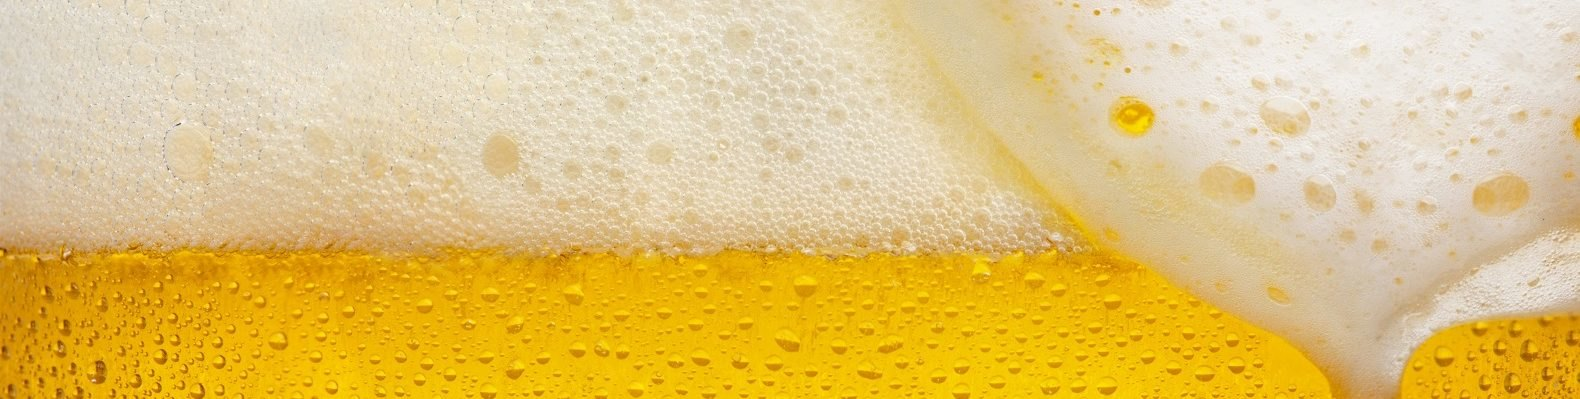 Close-up image of beer bubbles.